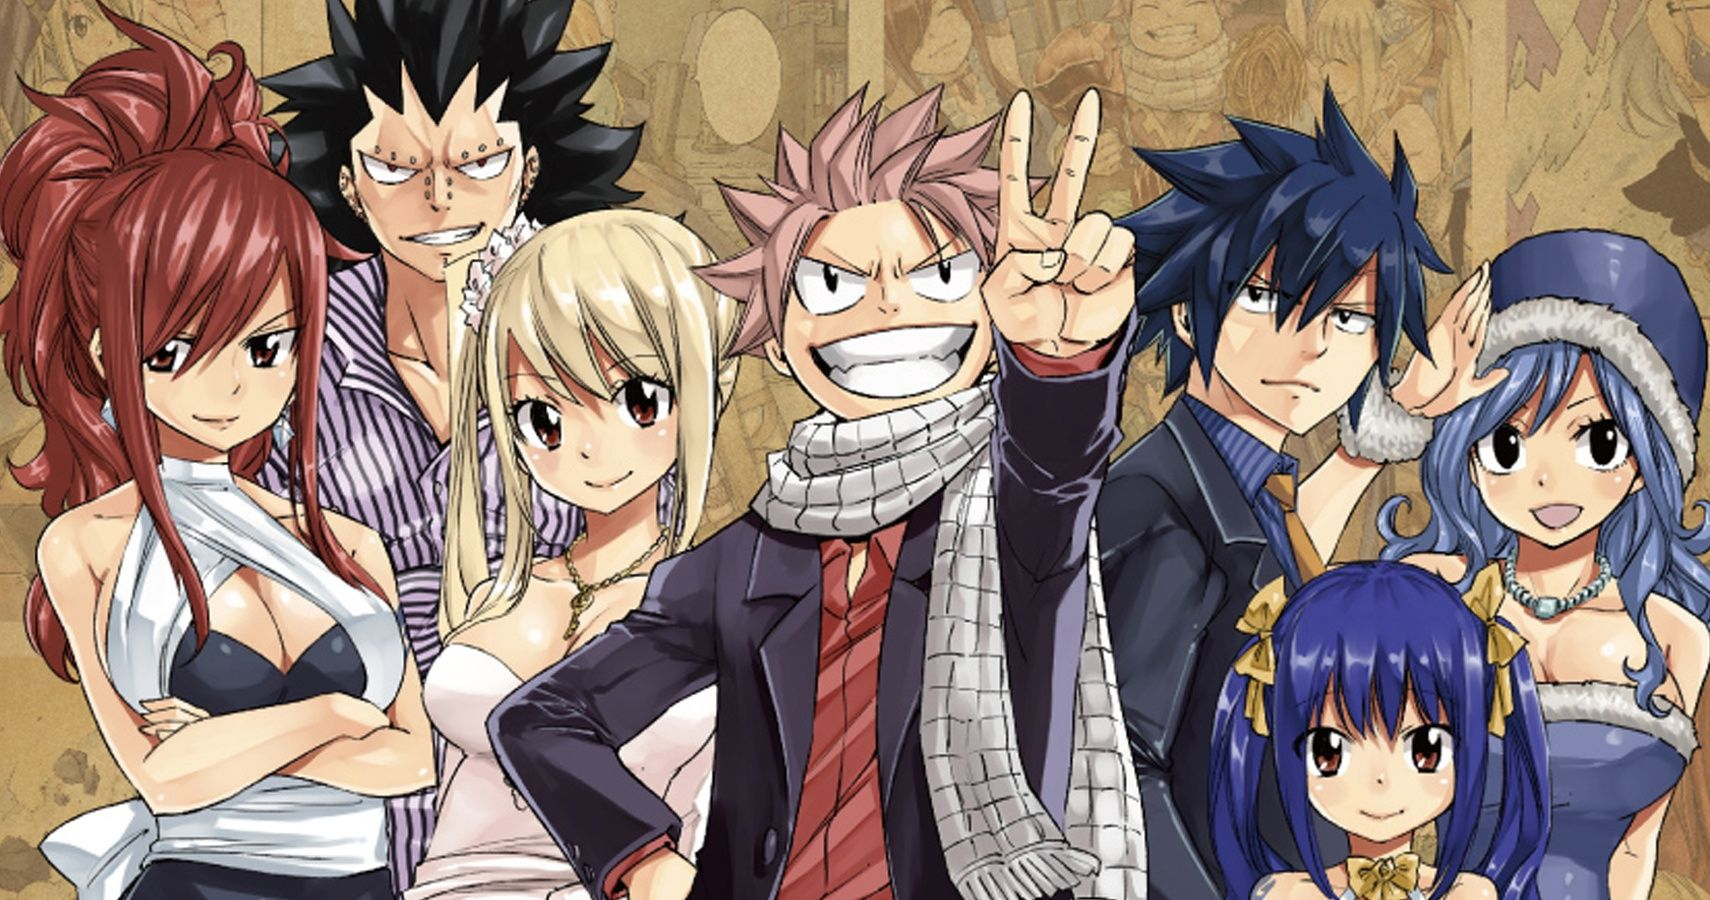 Fairy Tail: The 10 Worst Episodes (According To IMDb) | CBR